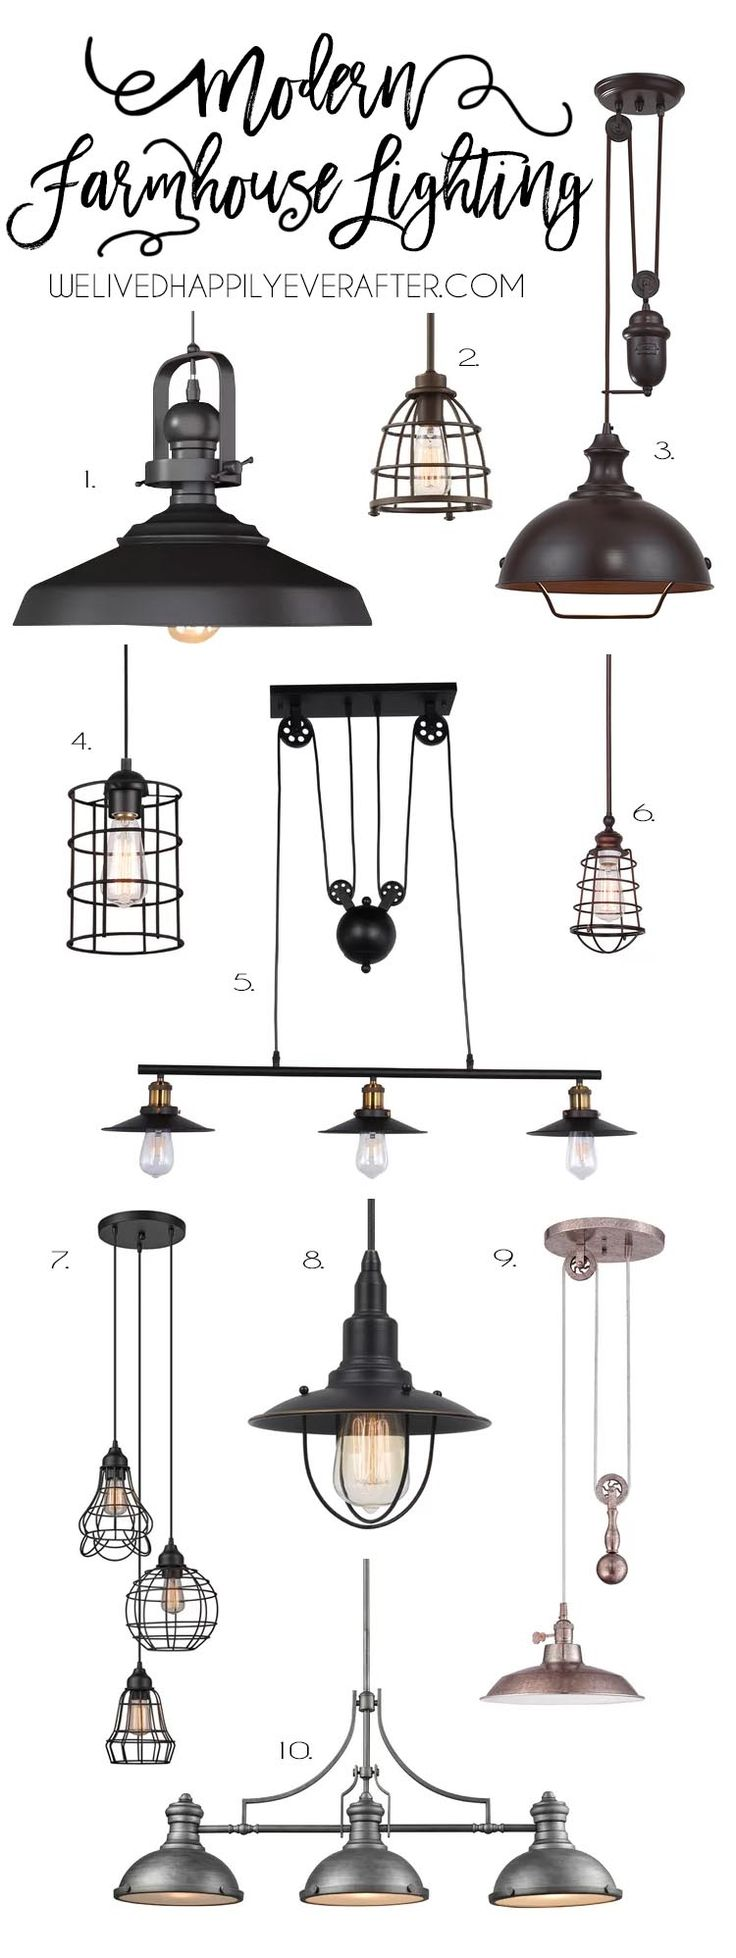 Rustic Industrial Modern Farmhouse Metal Lighting For Your Home Decor- #HannahsFarmhouseFavs